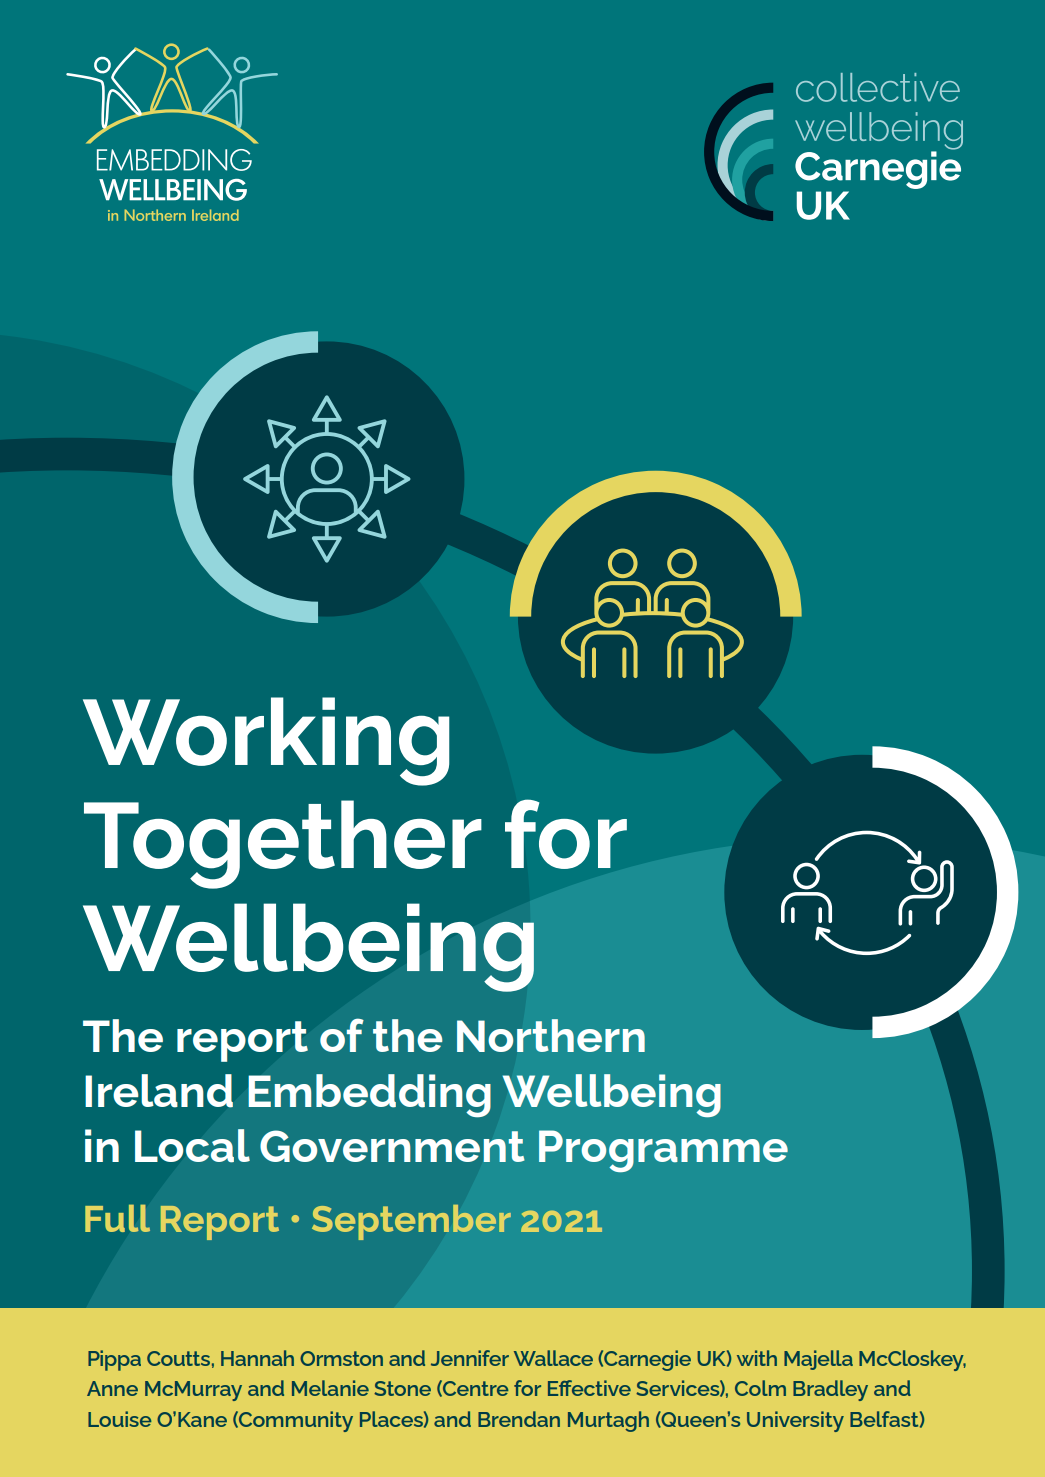 Working Together for Wellbeing: The report of the Northern Ireland Embedding Wellbeing in Local Government Programme (Full Report)